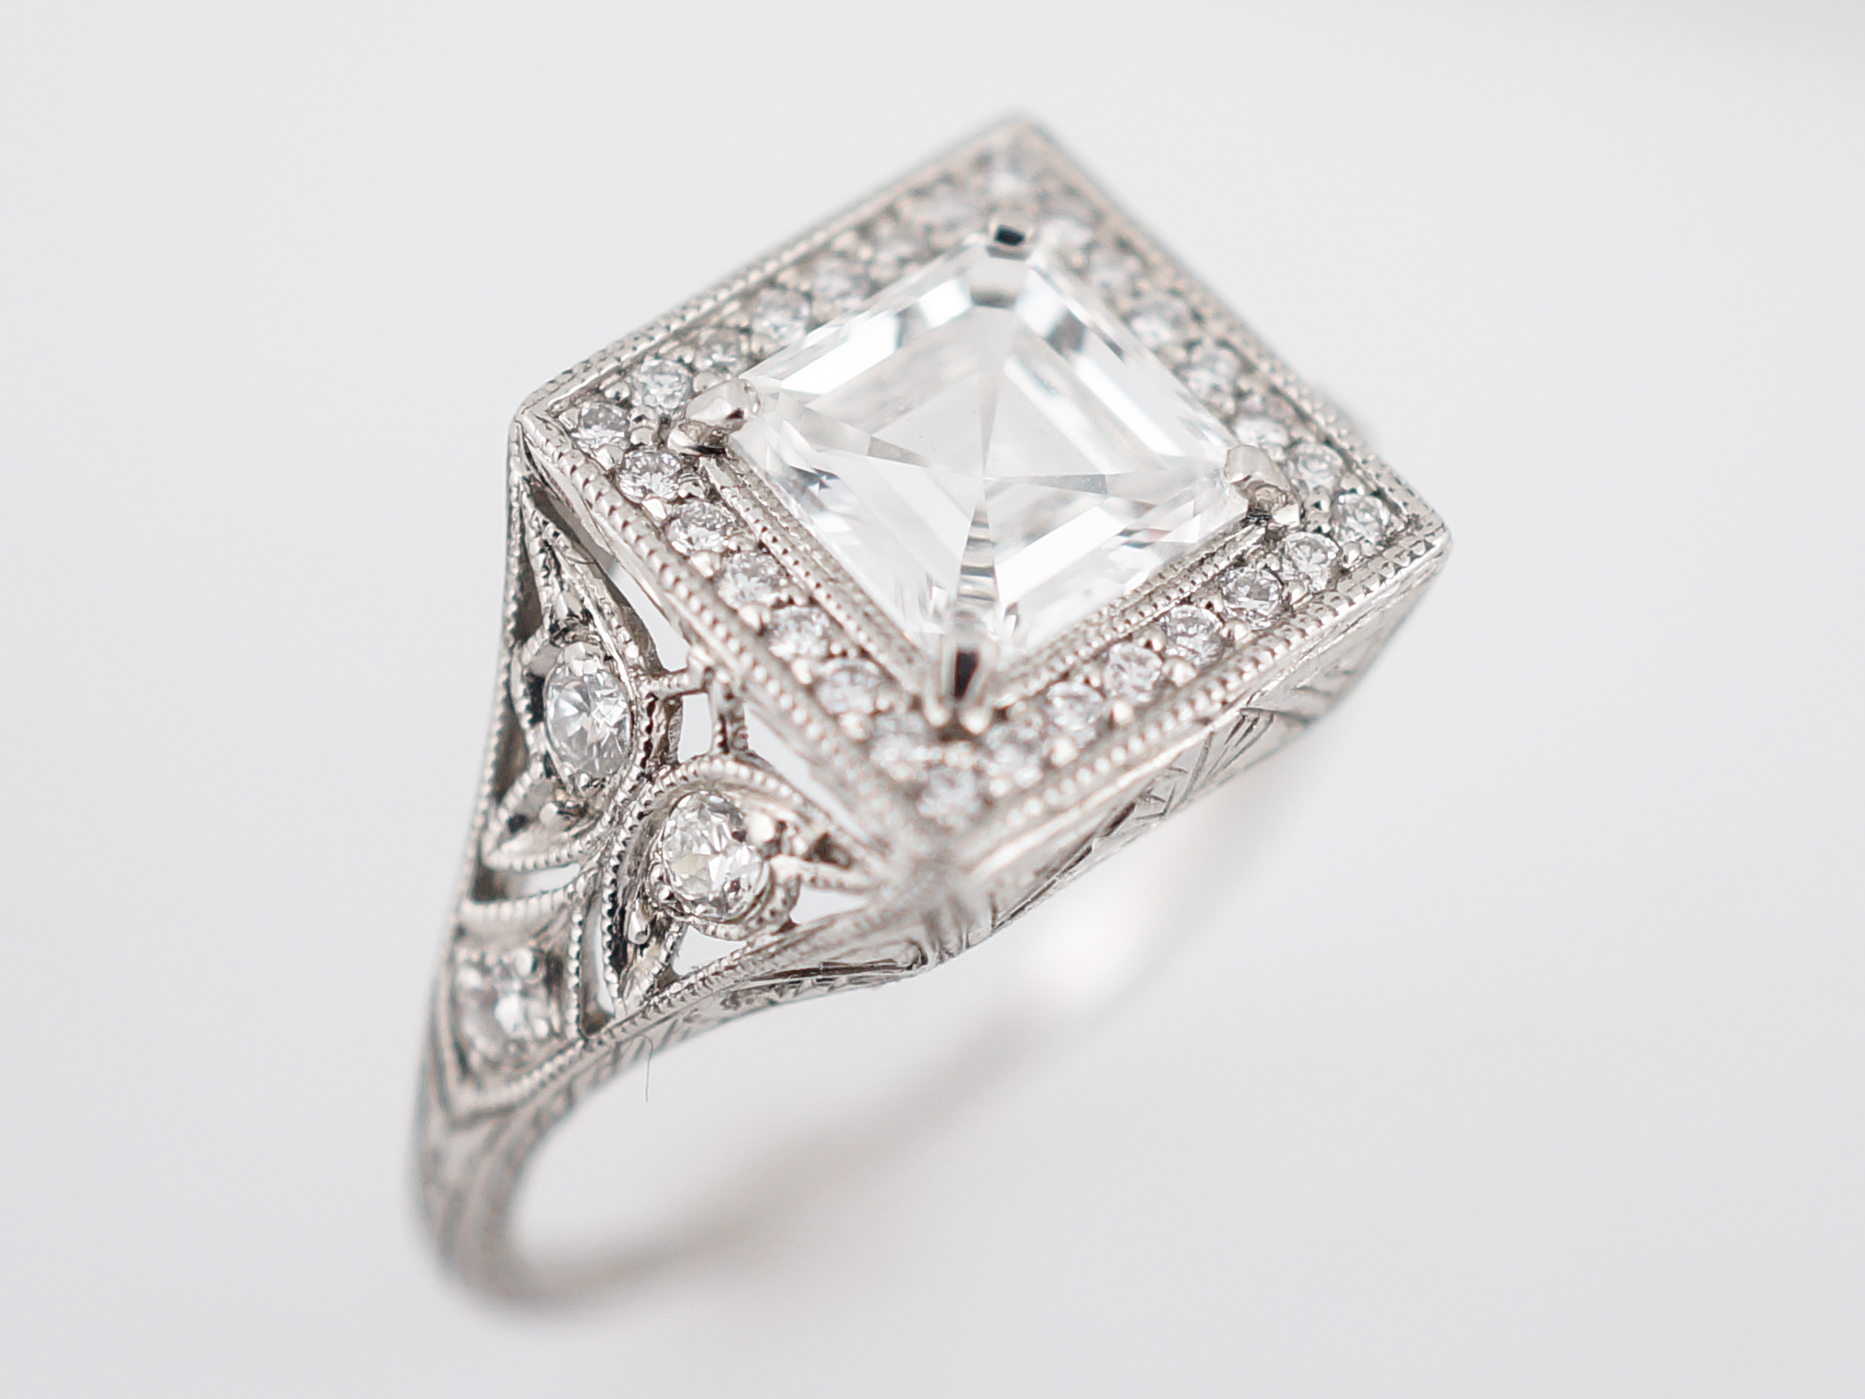 campbell engagement the diamond cut rings products dublin ring specialist s solitaire jewellers asscher finest classic